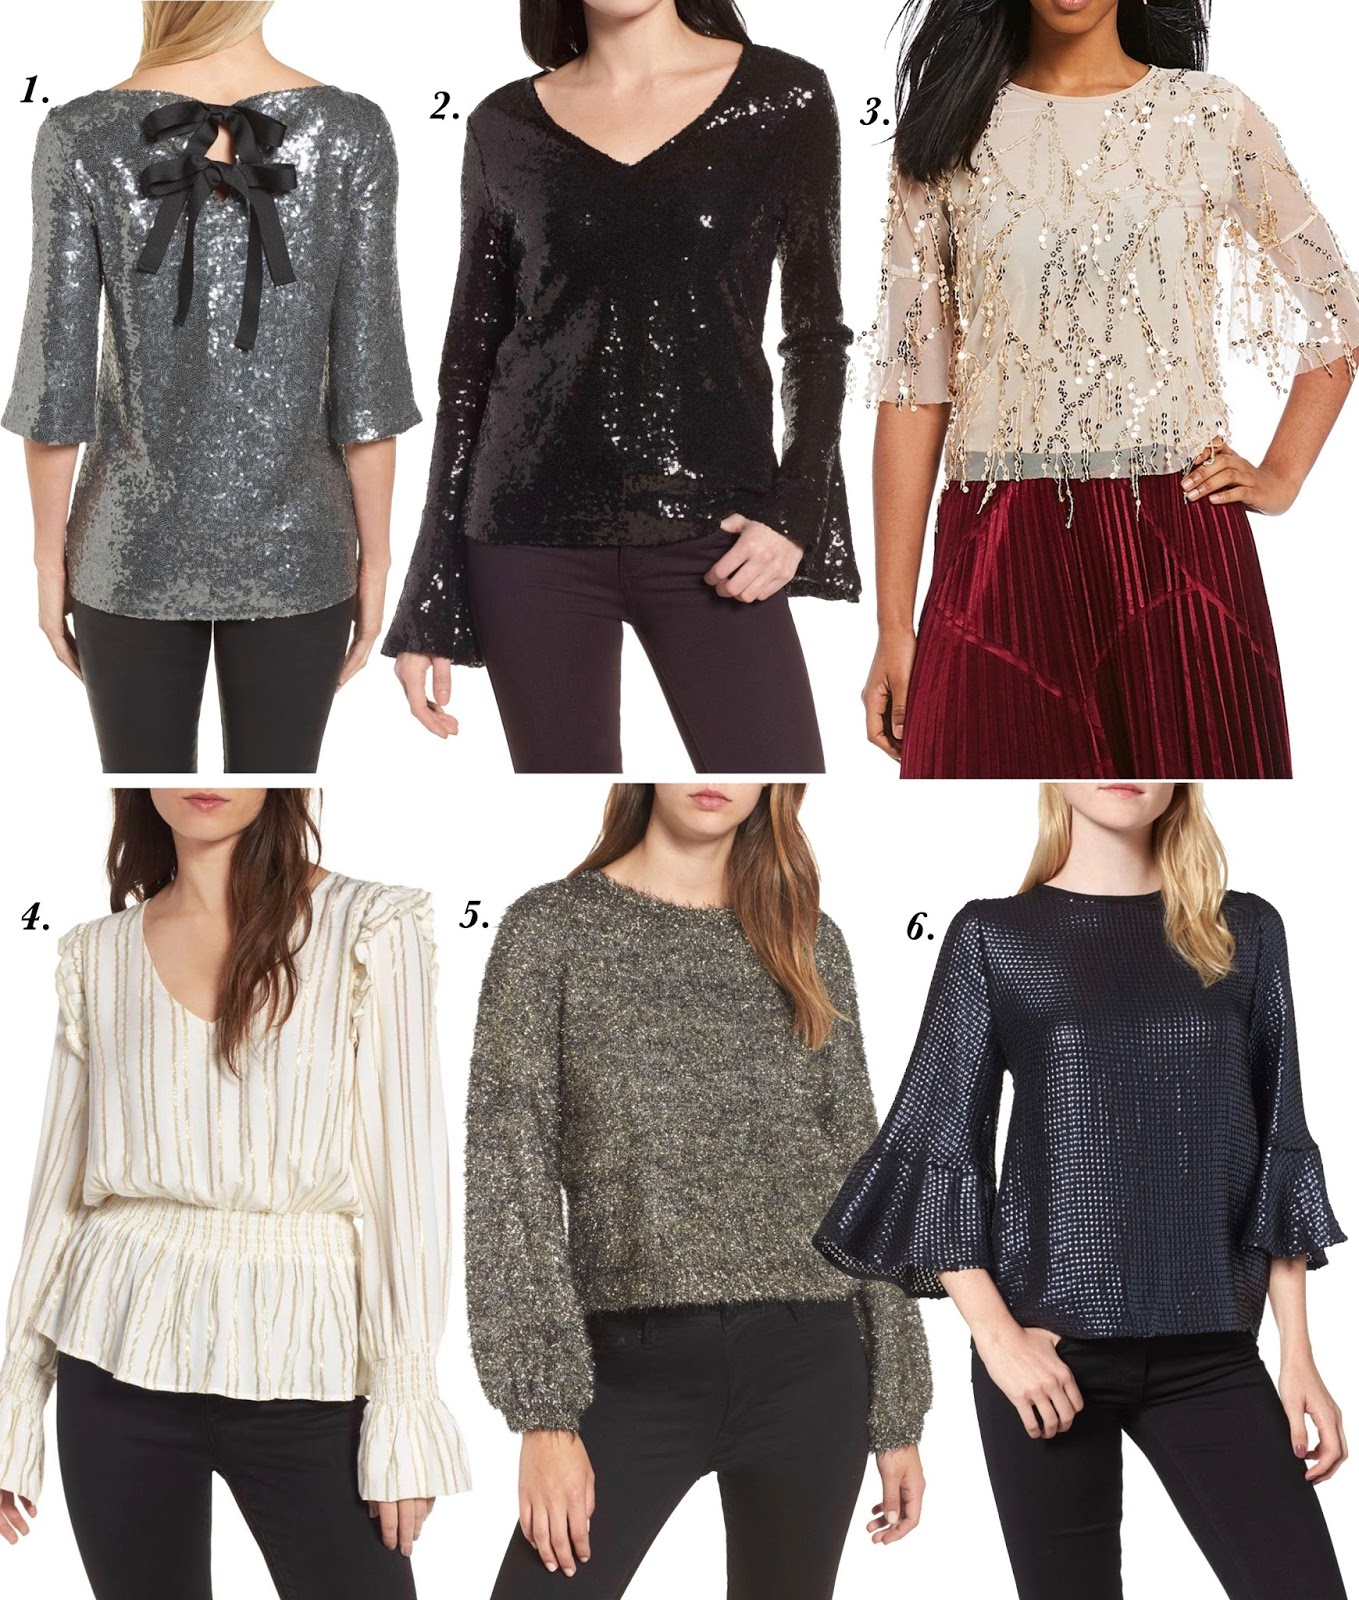 NYE Tops - Something Delightful Blog